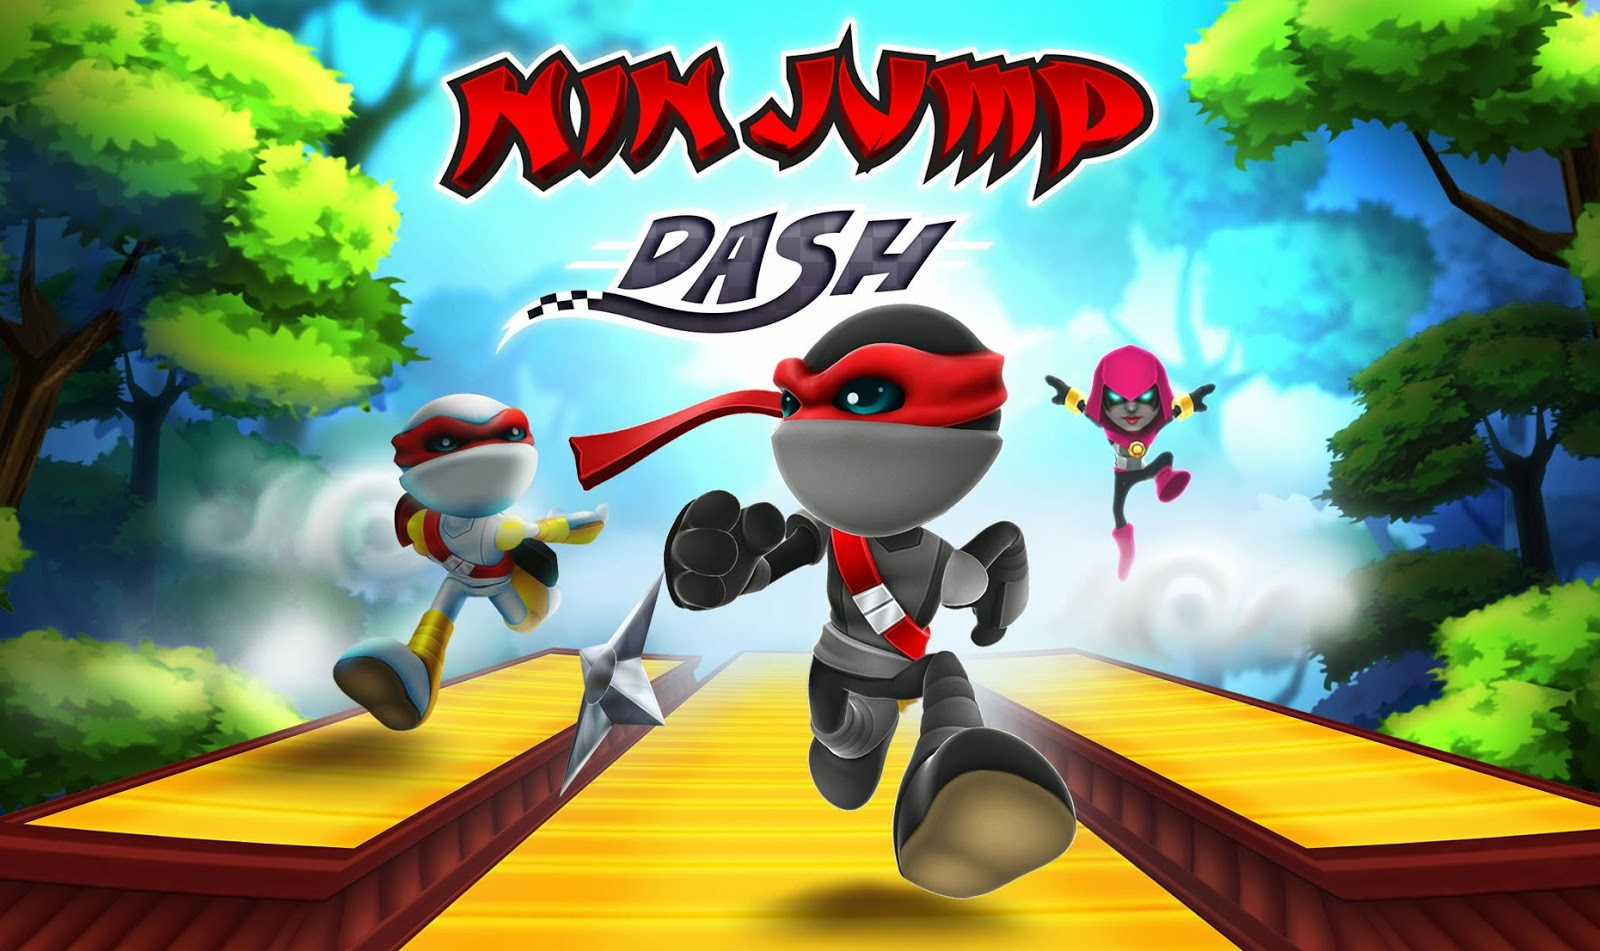 NinJump Dash Gameplay